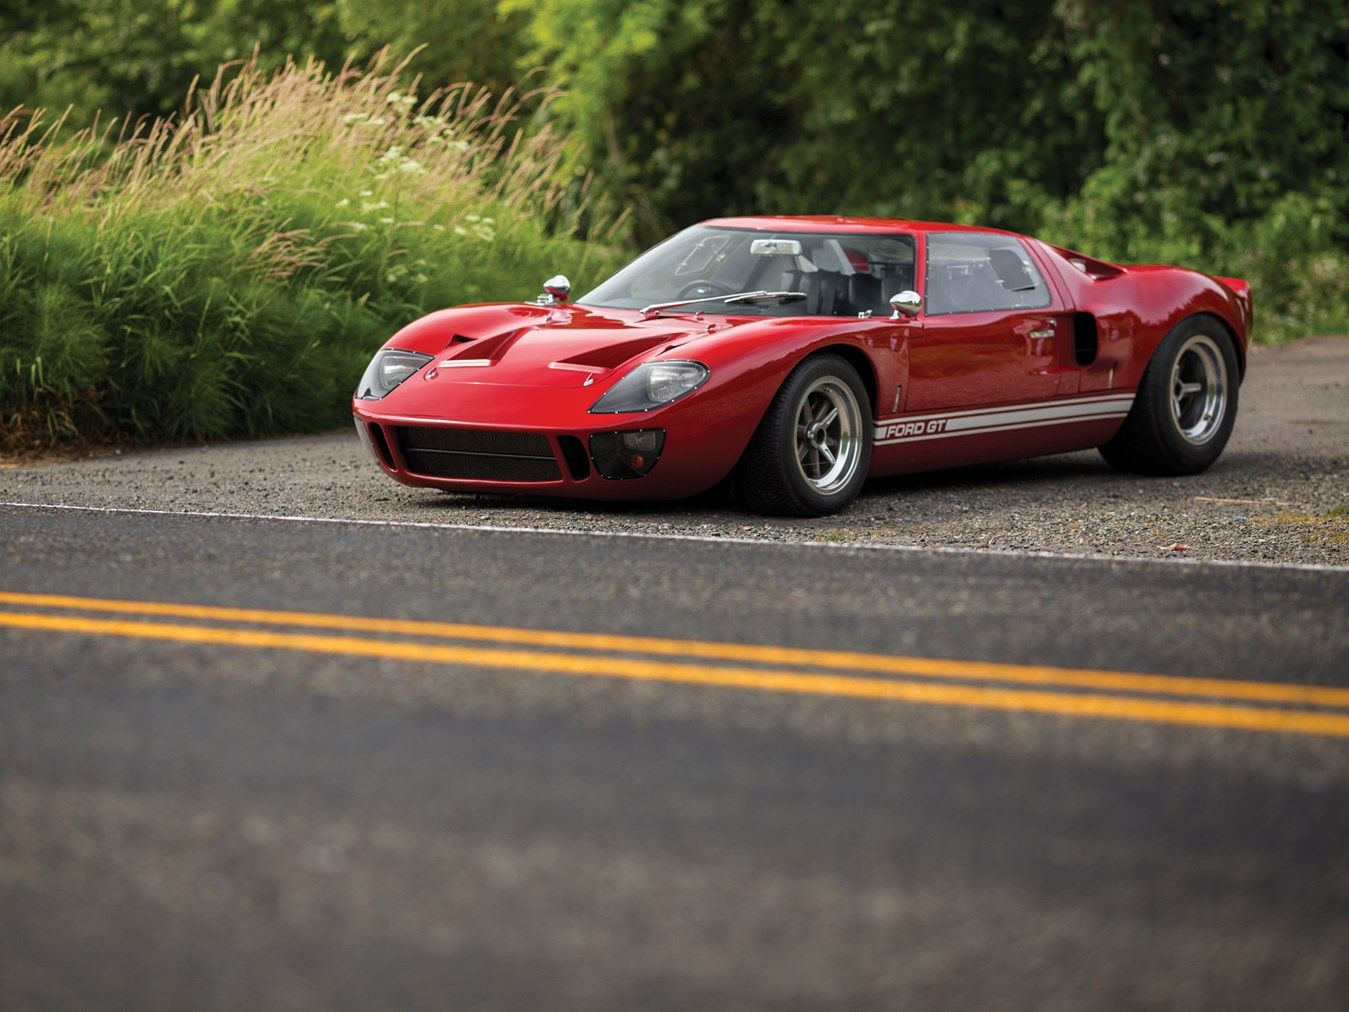 Has Ford Rejected Your GT Application? Buy A Classic GT40